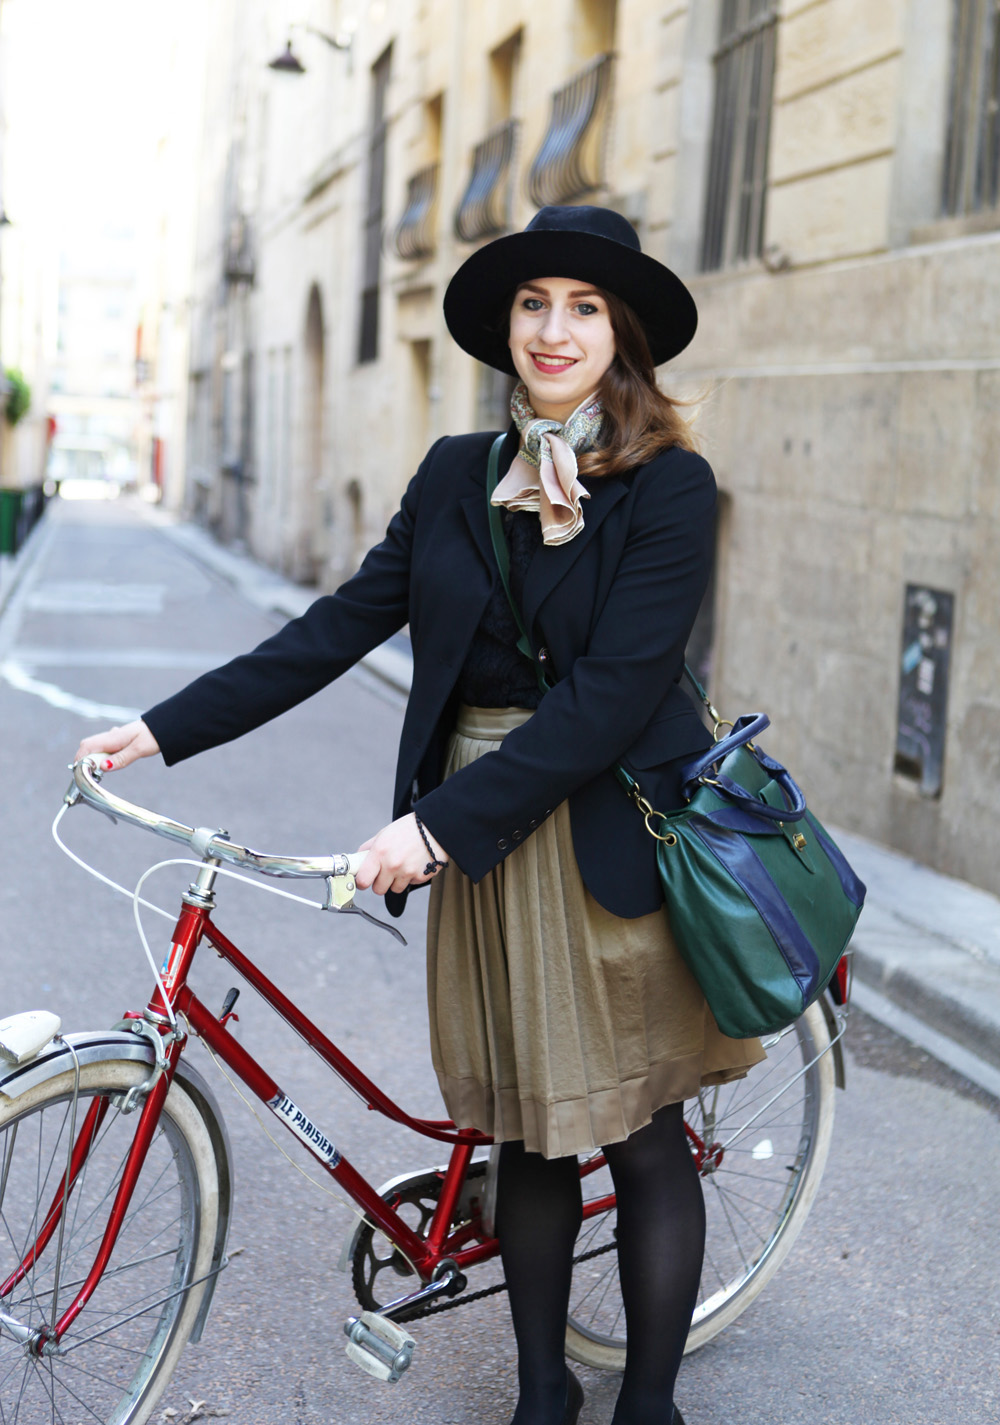 beret baguette street style paris bike pretty. Black Bedroom Furniture Sets. Home Design Ideas